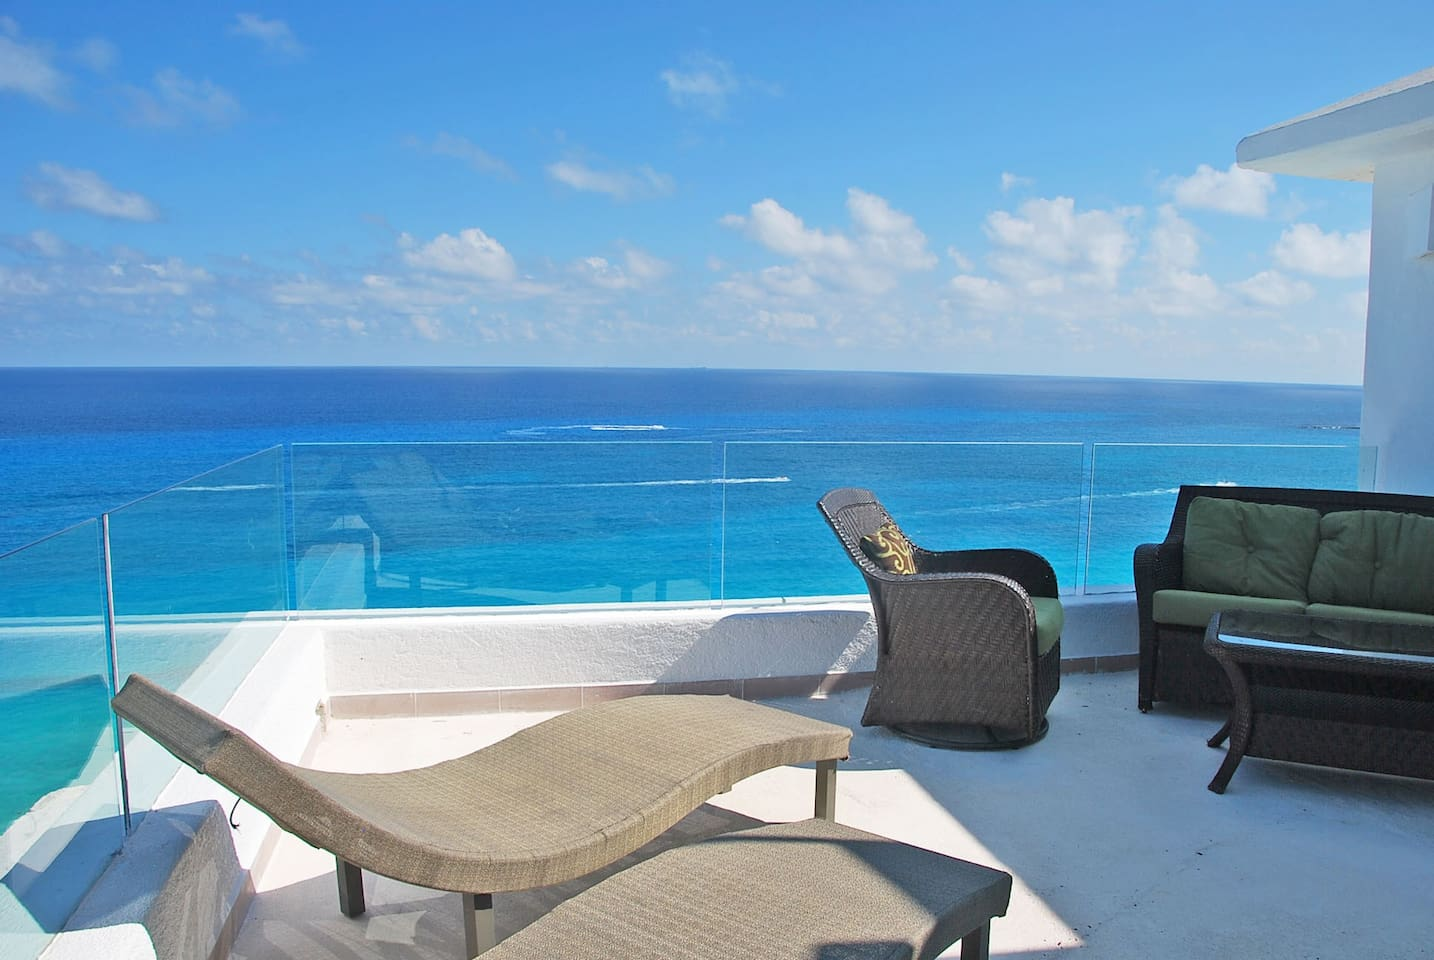 The views from Penthouse #3000 are beyond amazing.  I have been taking care of penthouse units exclusively in Cancun since 2004.  These are the nicest views I have yet seen.  #3000 features two terraces, first we will look at the ocean side terrace.